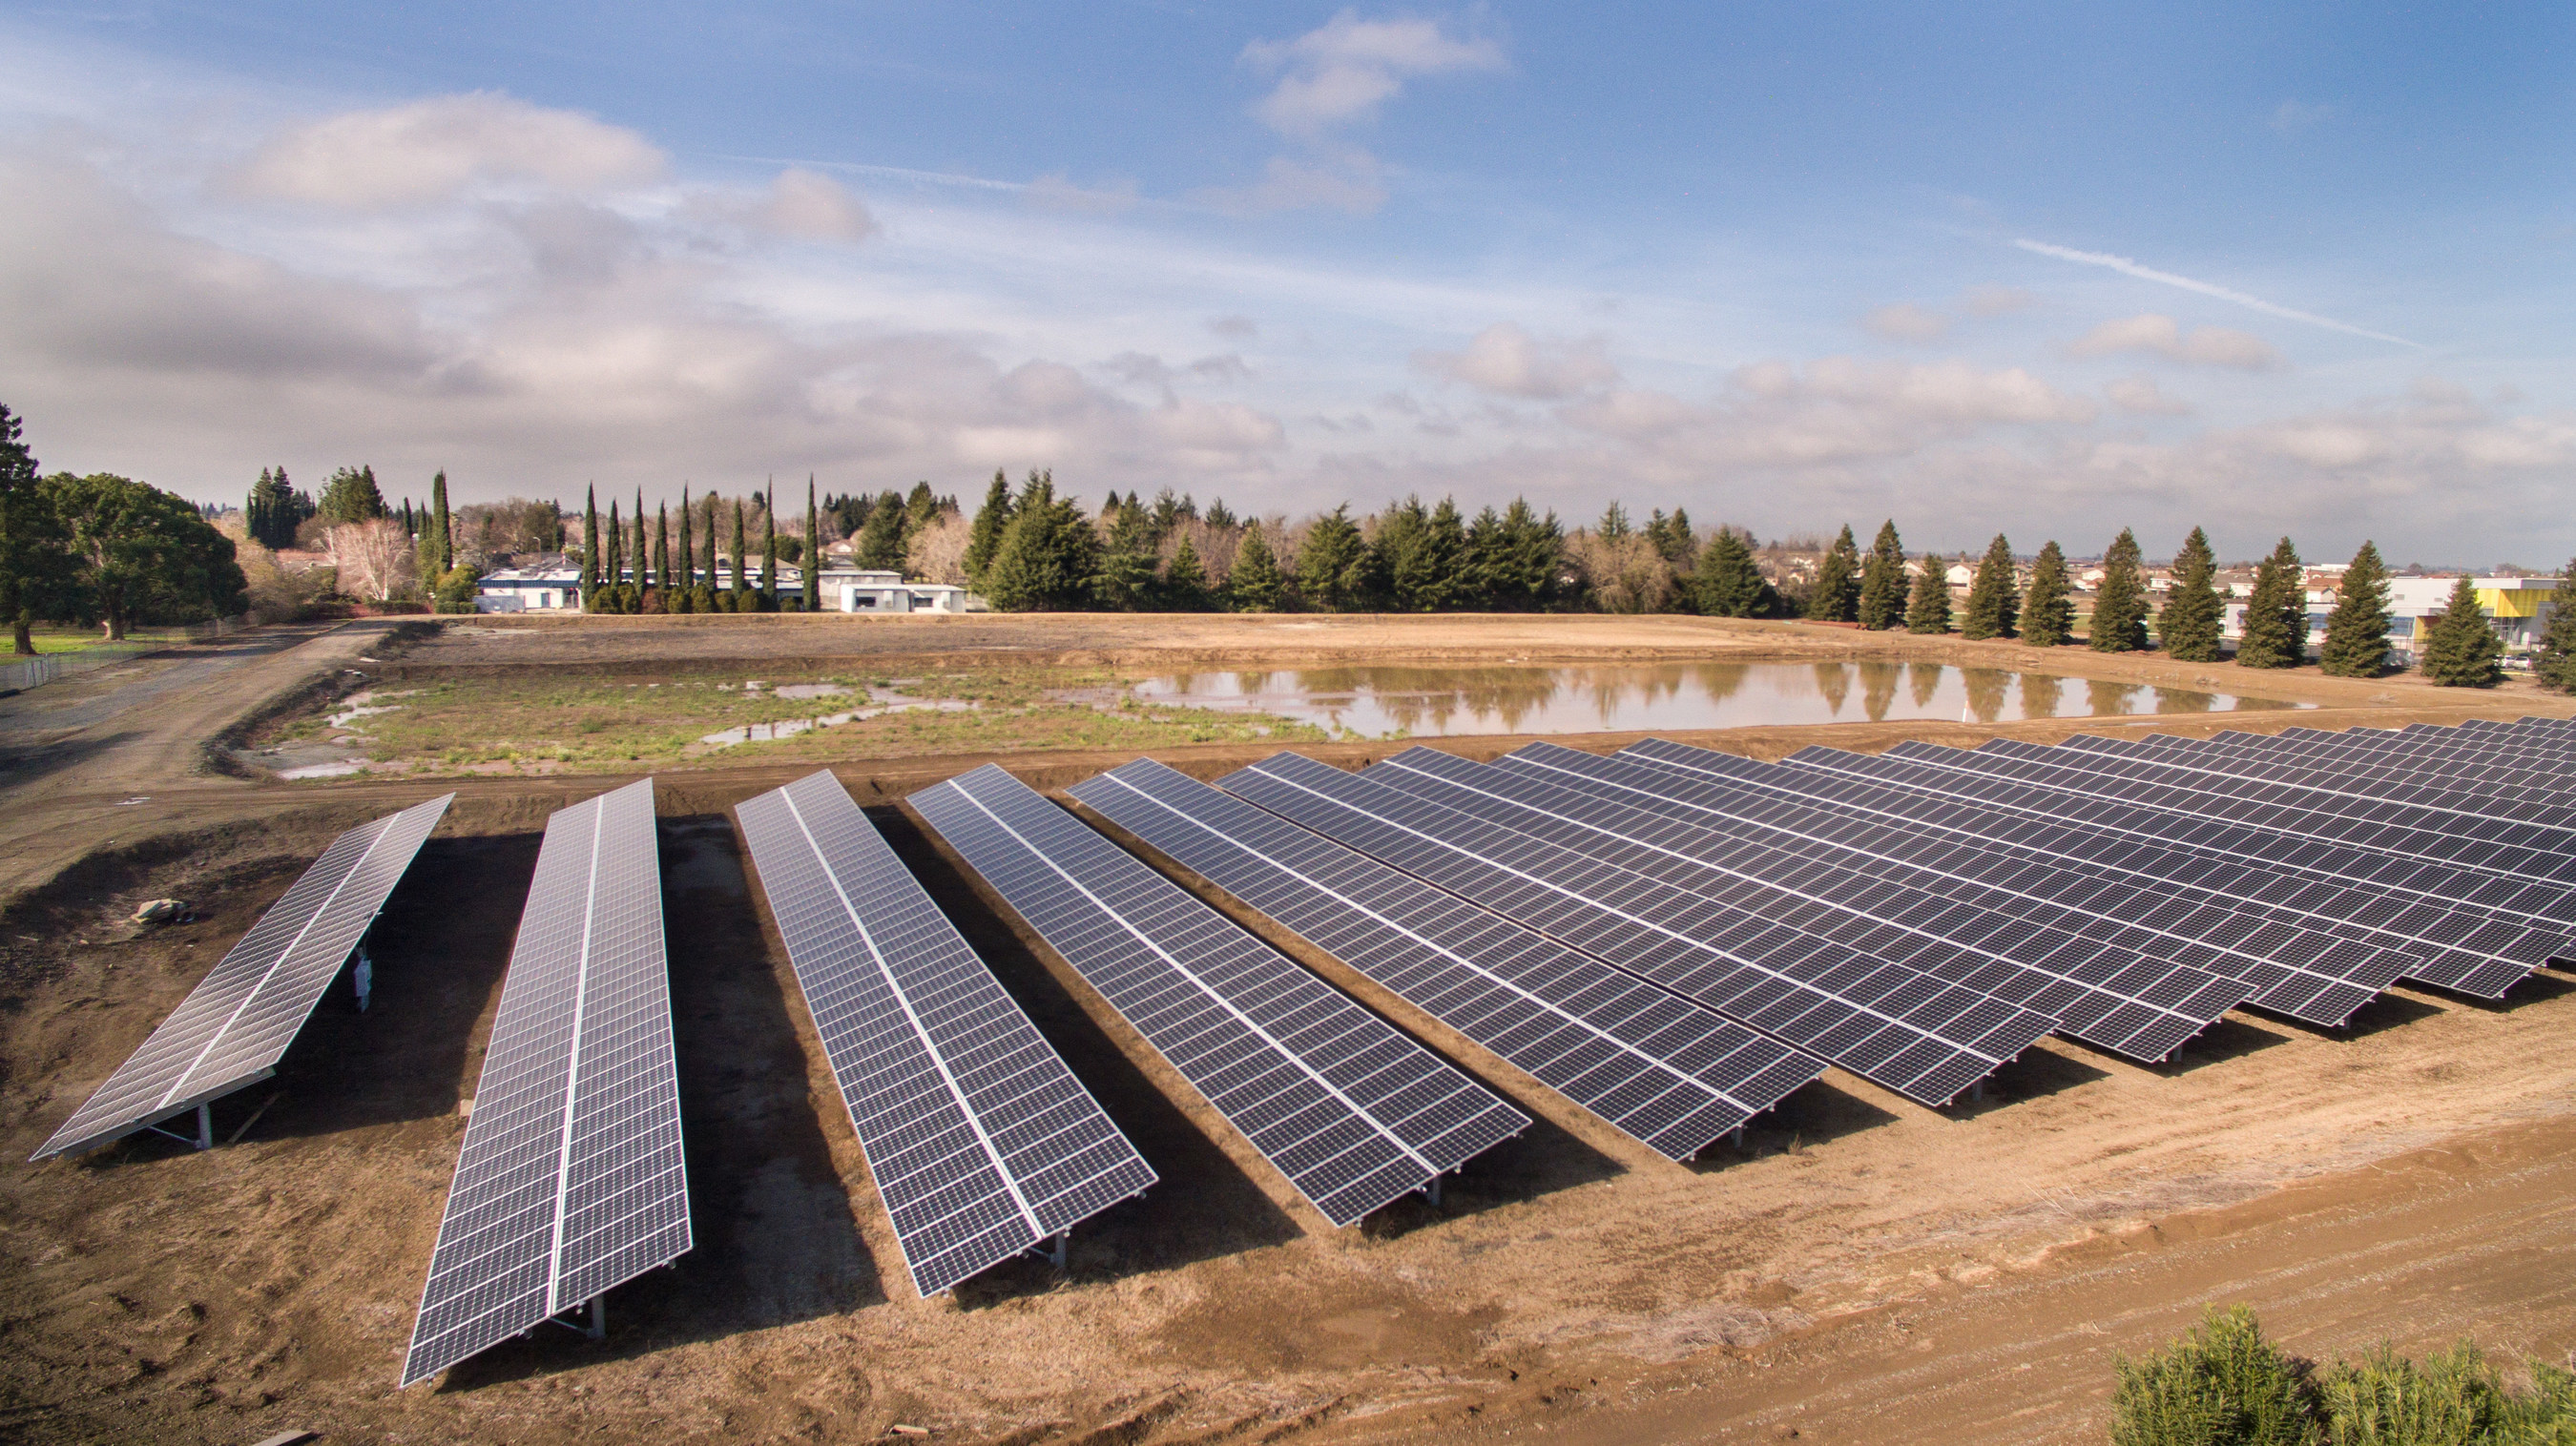 Solar installed by OpTerra Energy Services for Yuba City, CA, is part of a larger, comprehensive energy project that will save the City $6 million in energy costs.